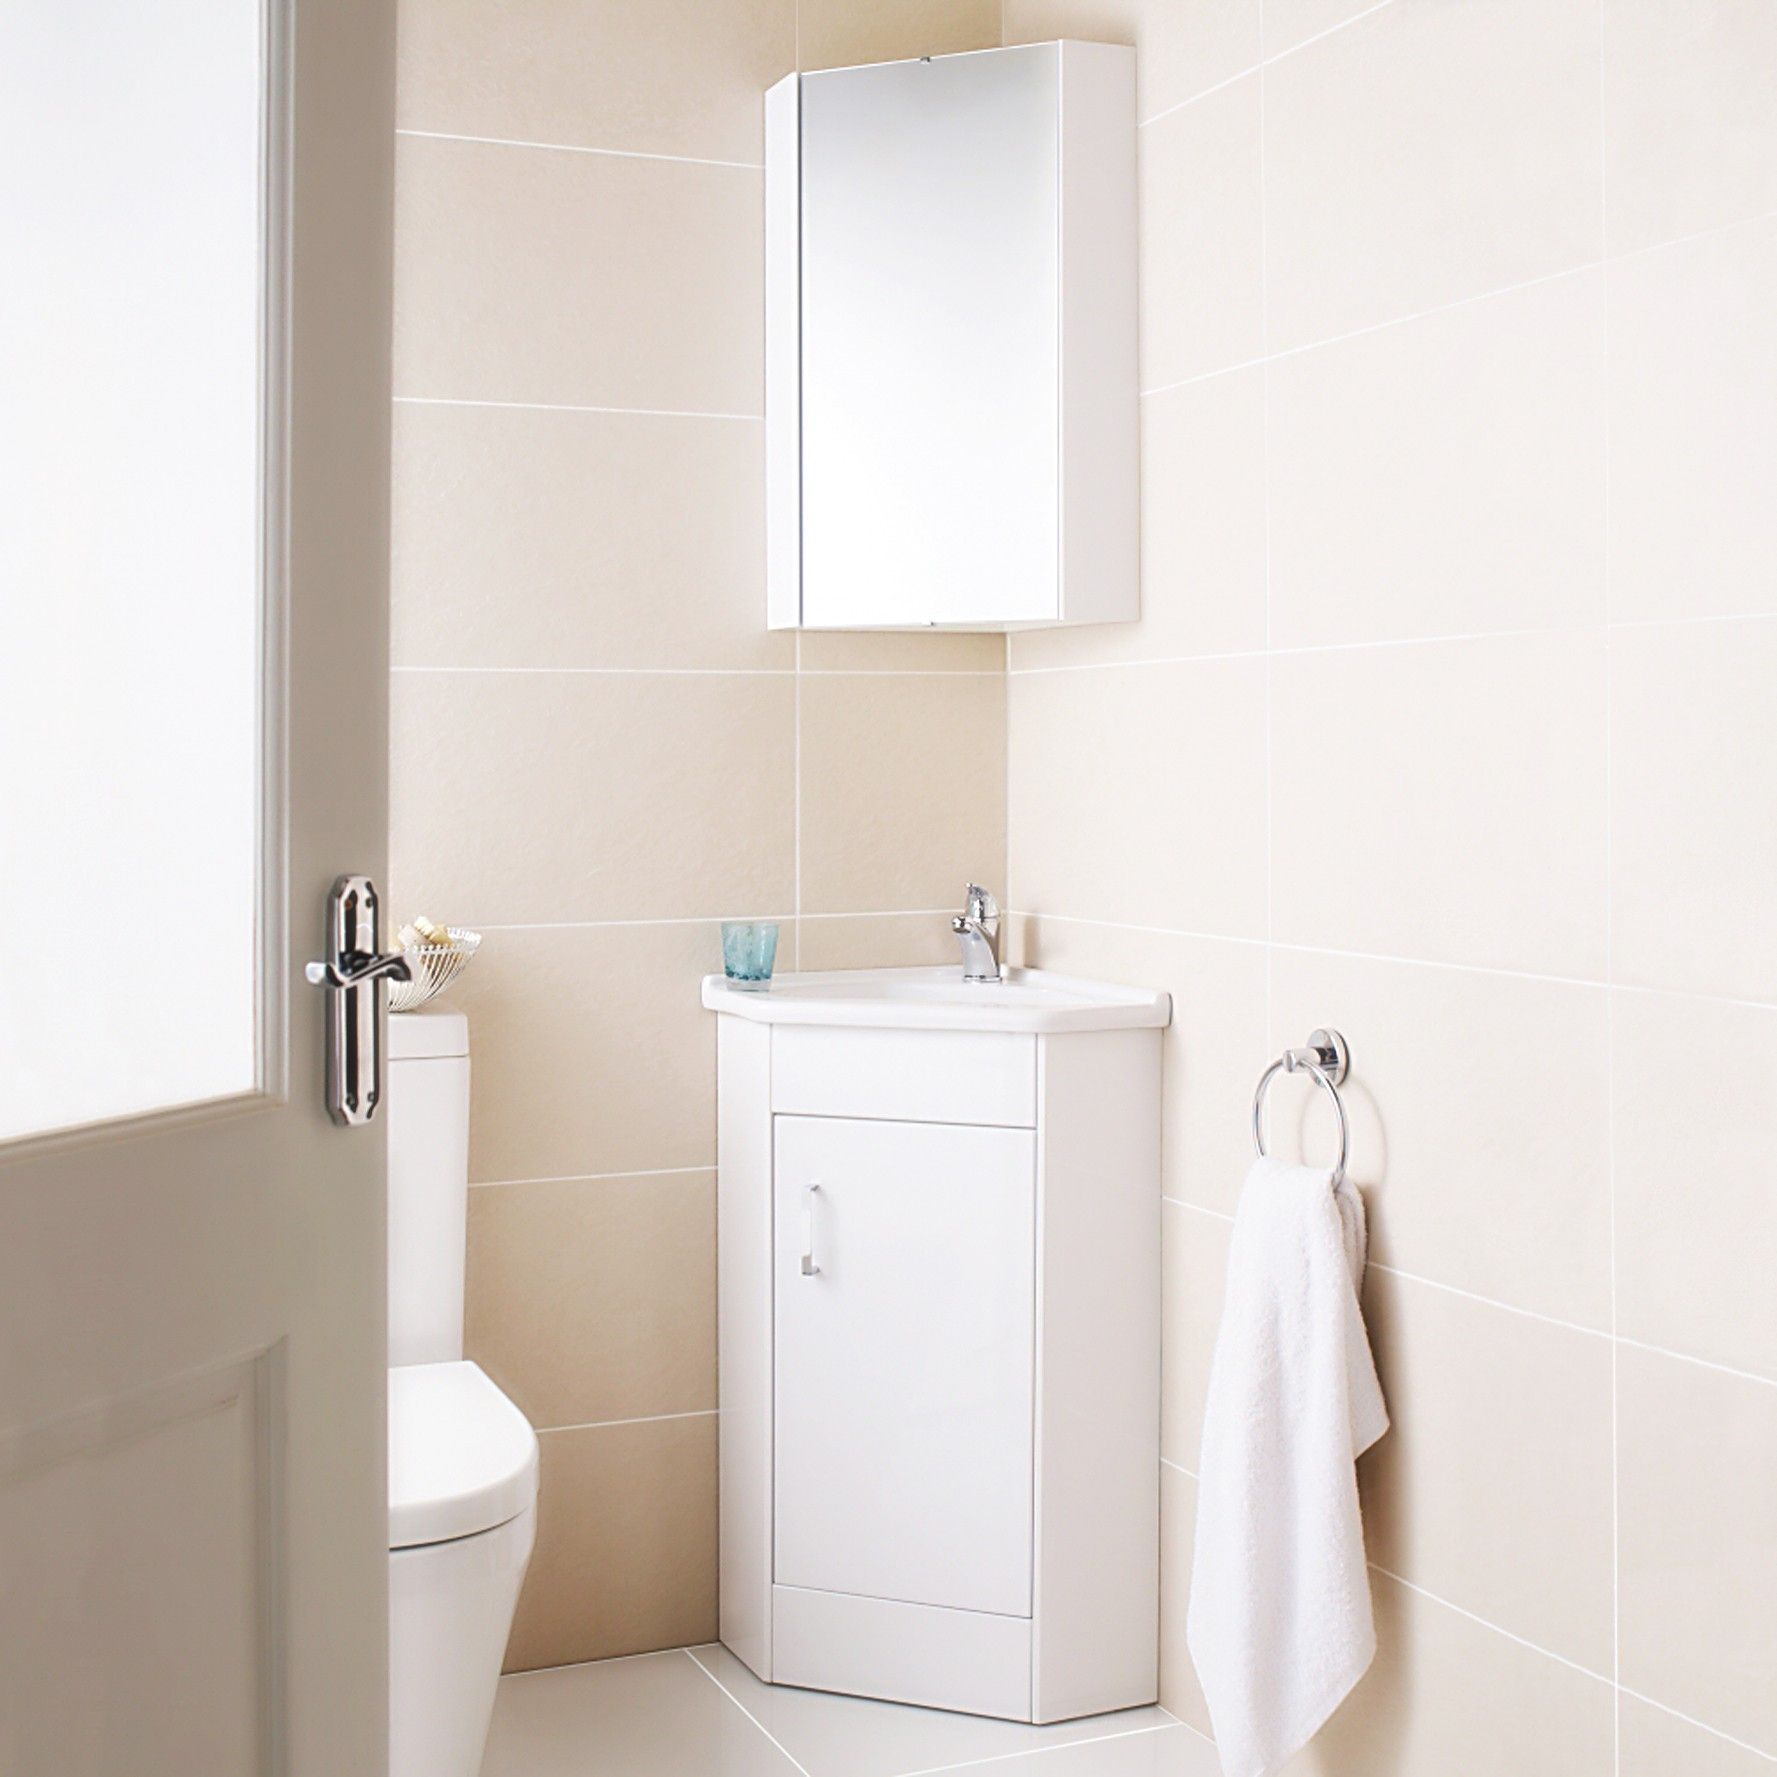 Small Corner Mirror Bathroom Cabinet Http Betdaffaires Com